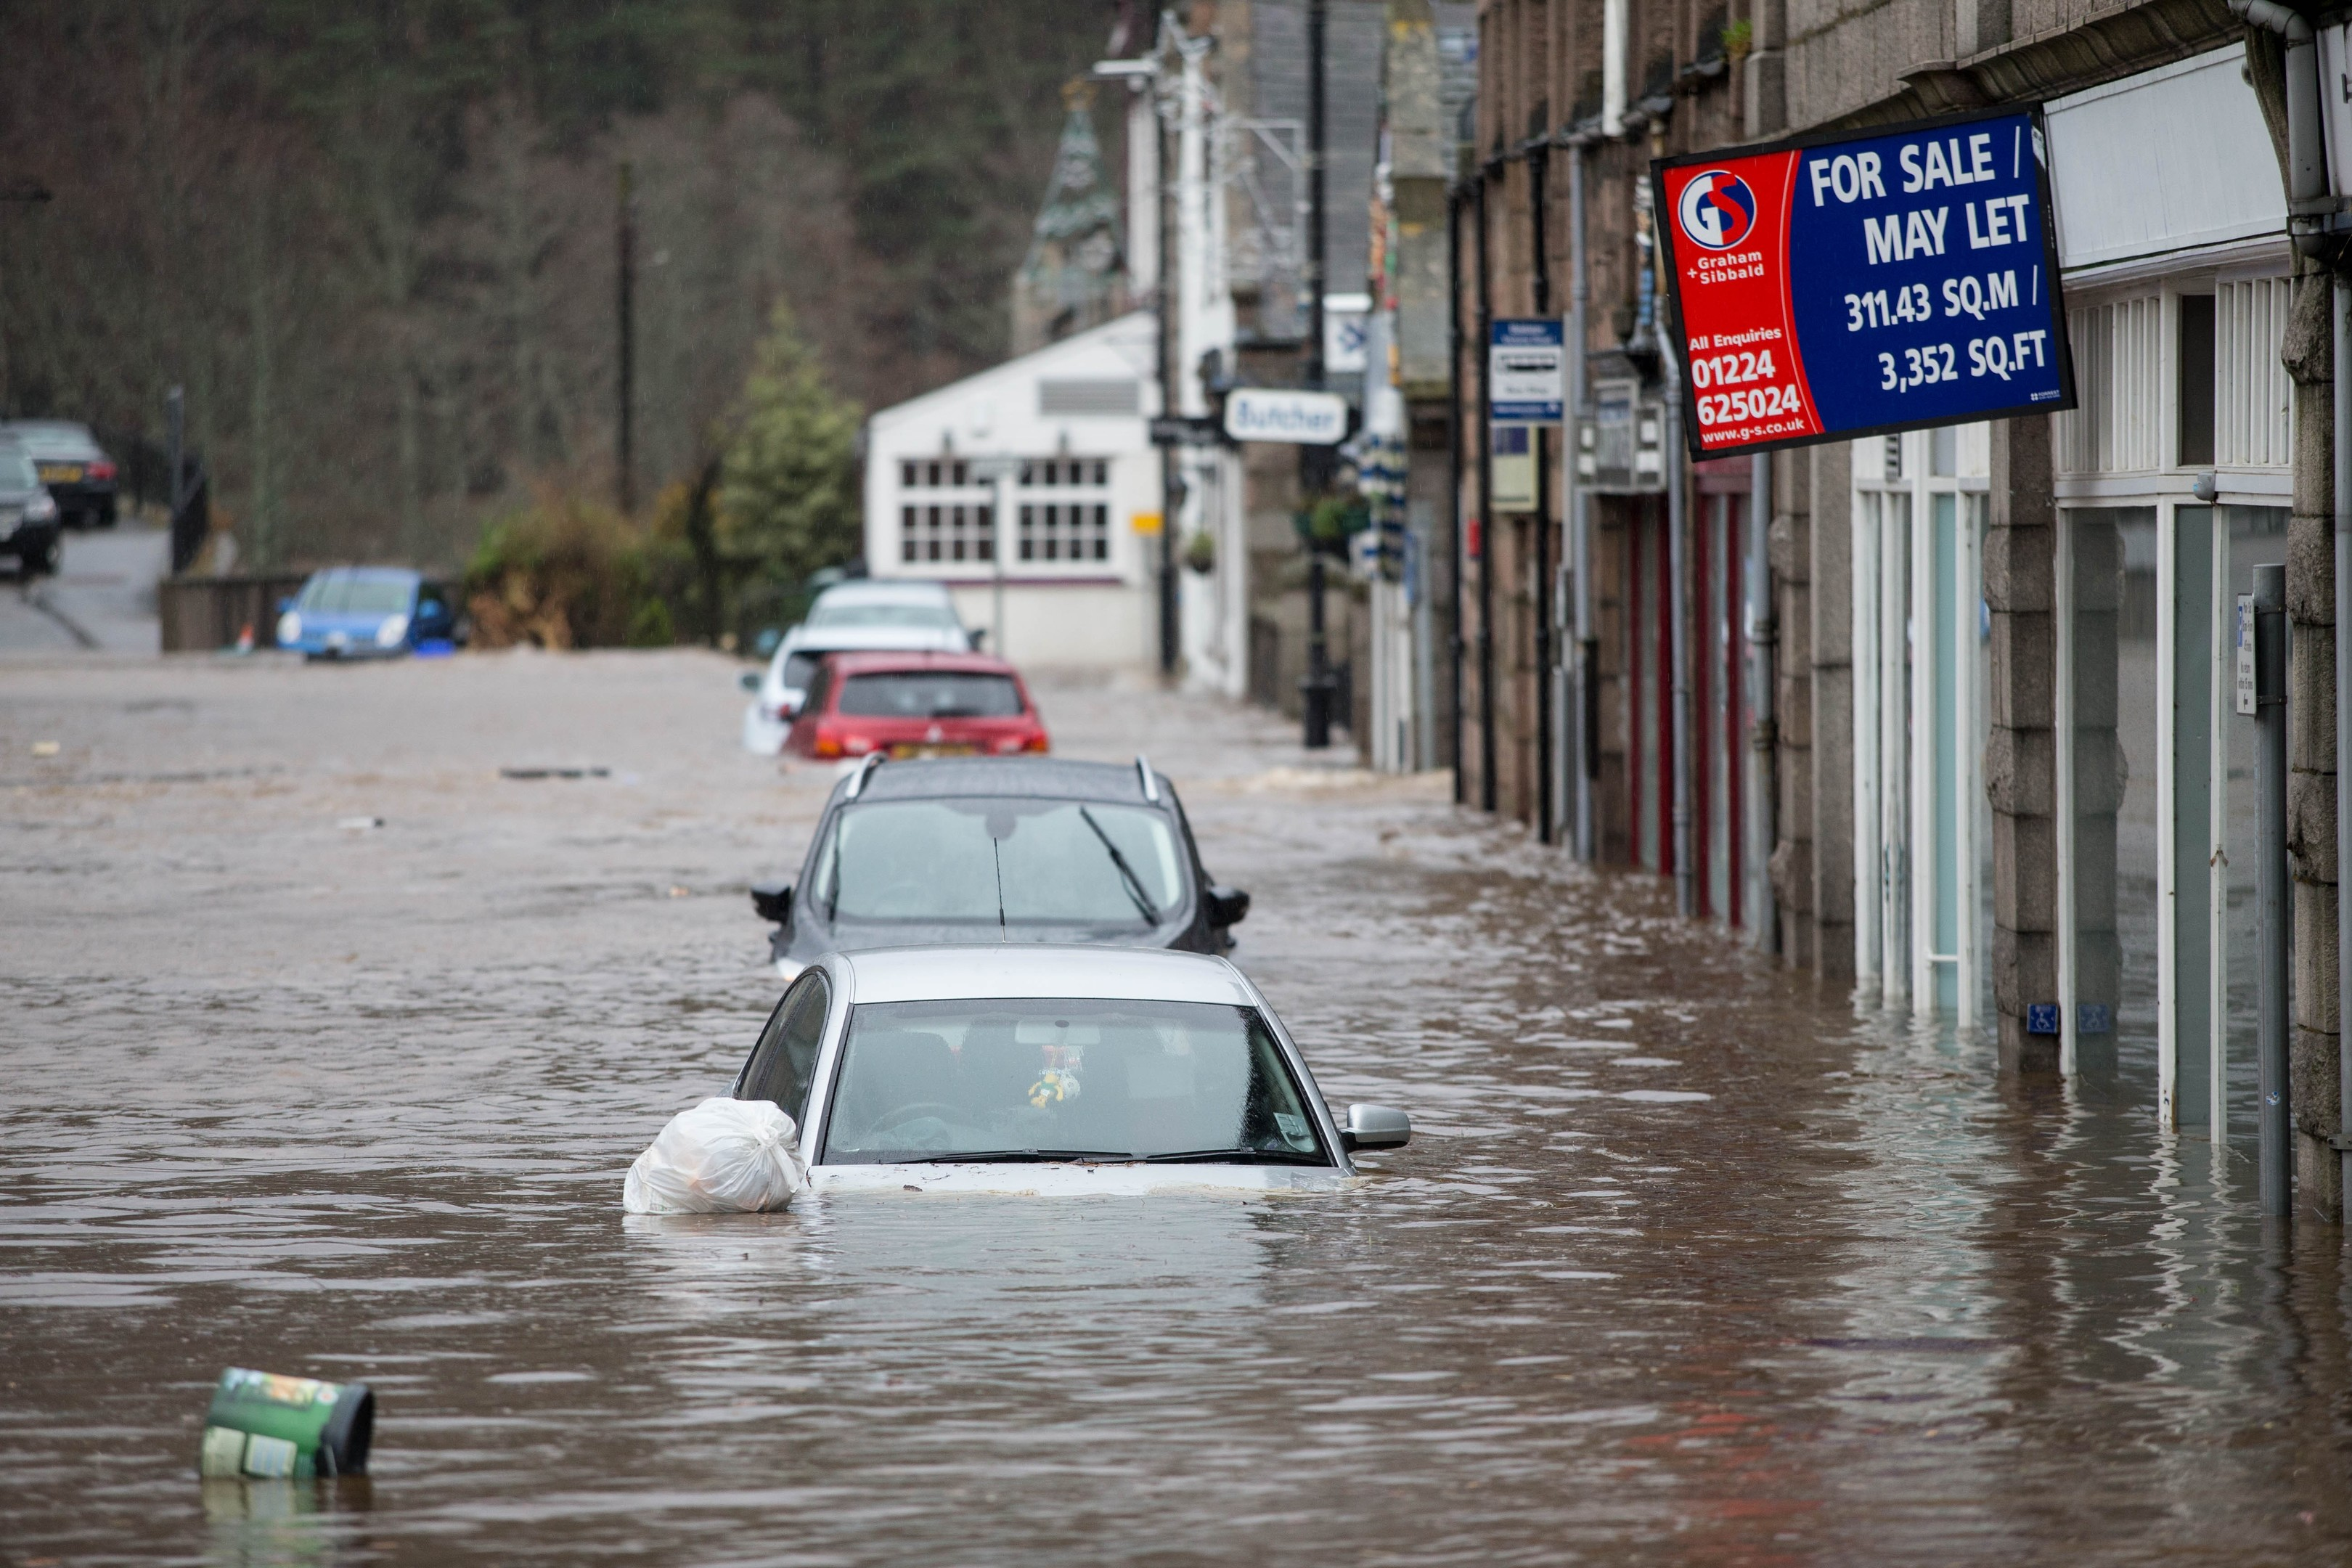 Ballater was badly affected by flooding after the River Dee burst its banks.